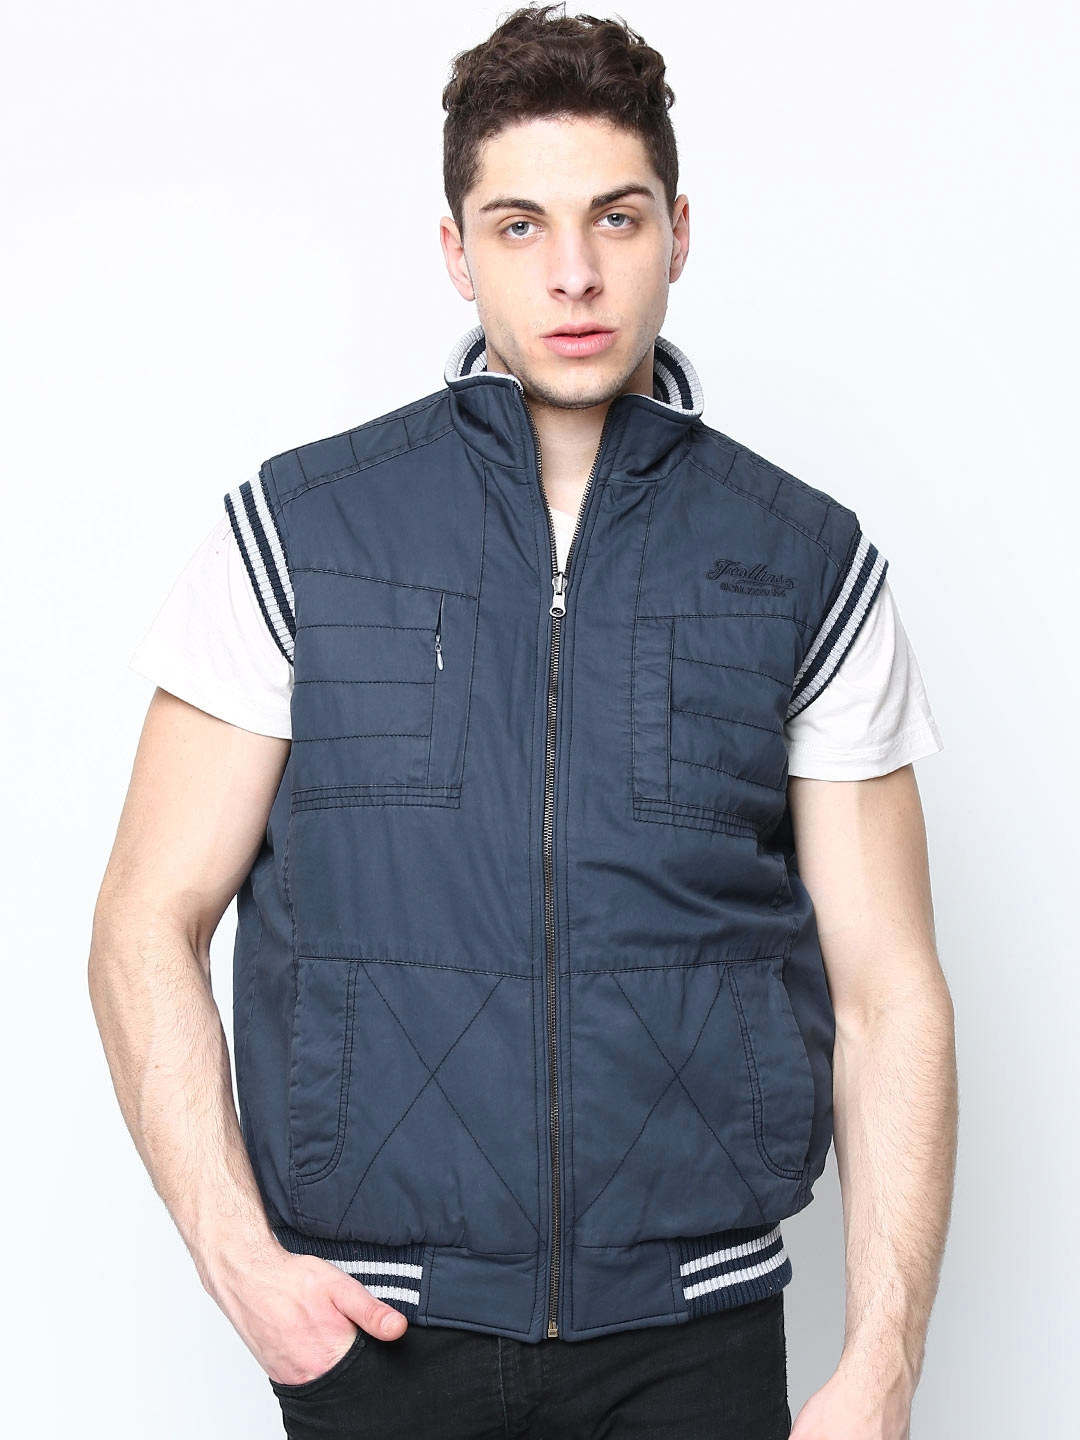 Buying Men's Jackets online Online shopping allows you to buy Denim jackets from brands like Nike, Flying Machine, Peter England, Jack & Jones, Puma, Campus Sutra, Levi's, Mufti, People, Indian Terrain and Caliber India.